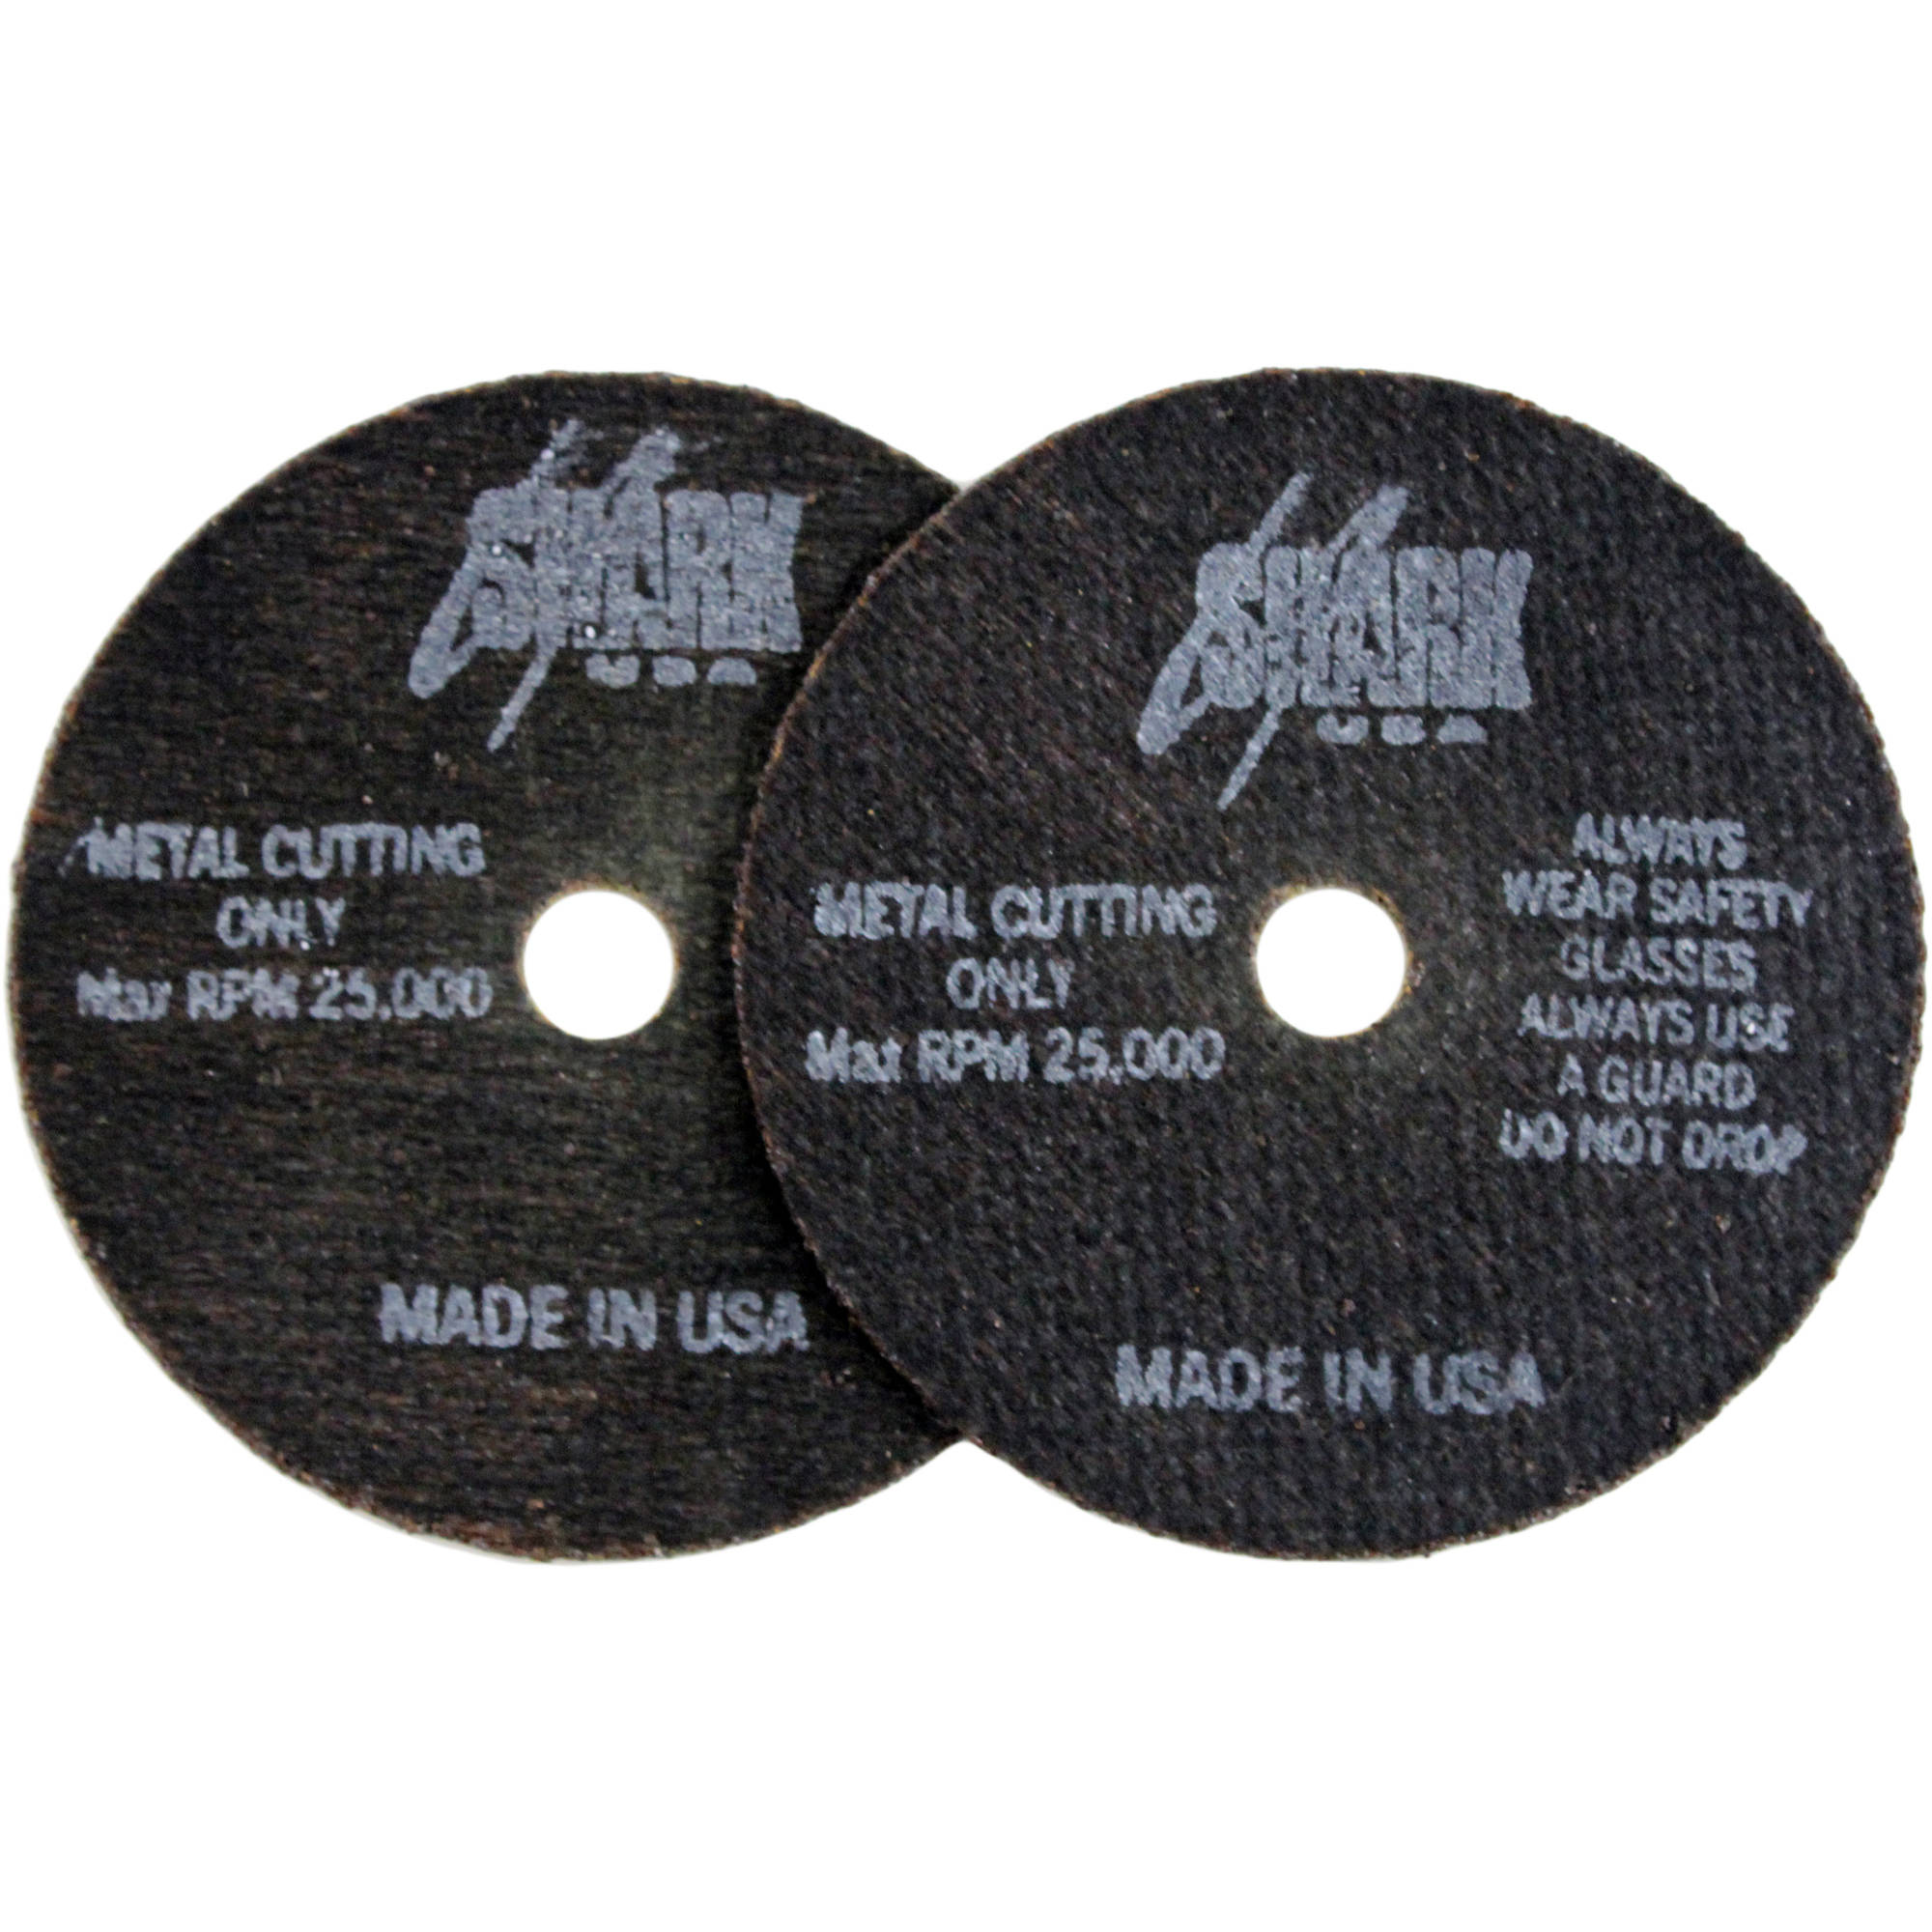 "Shark Cutoff Wheels, 3"" x 1/32"" x 3/8"", 10pk, 54 Grit"